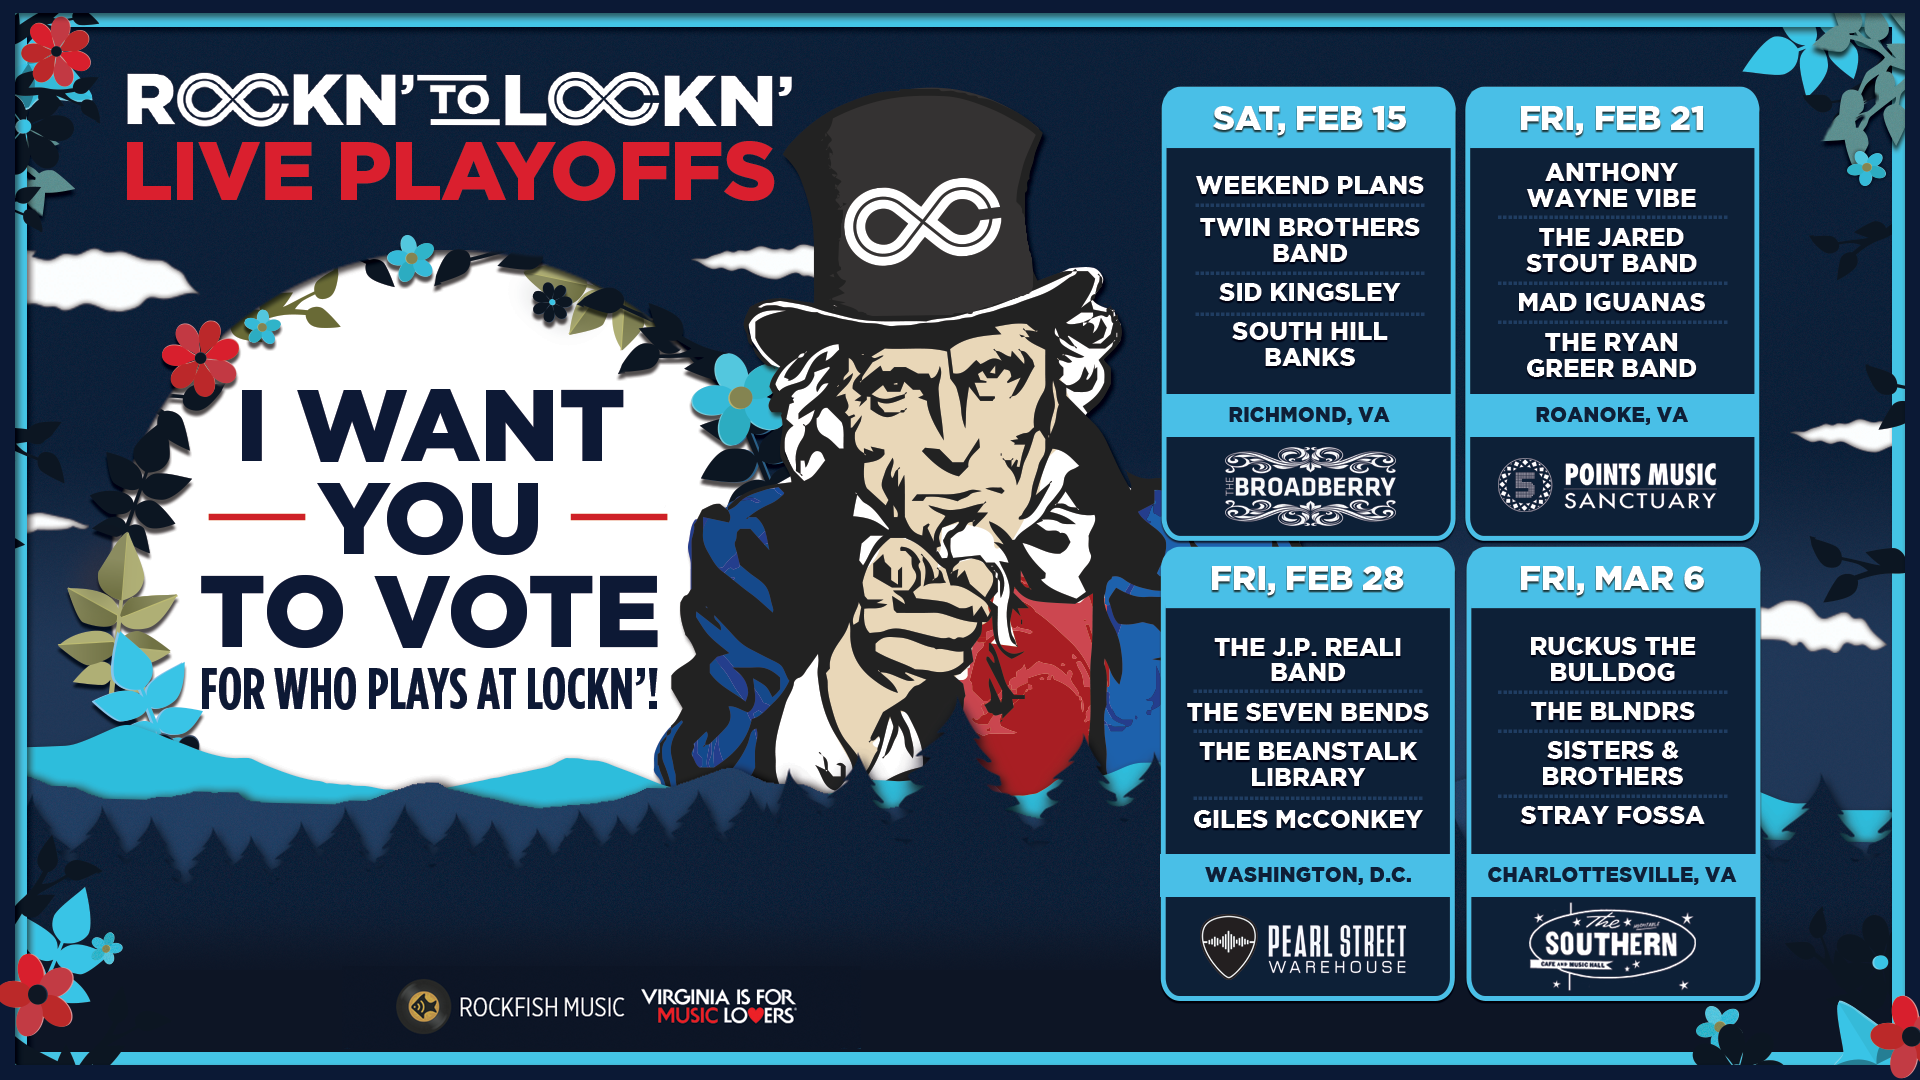 Announcing ROCKN' to LOCKN' Live Playoffs! Get Tickets and Vote Live for Who Plays LOCKN' 8